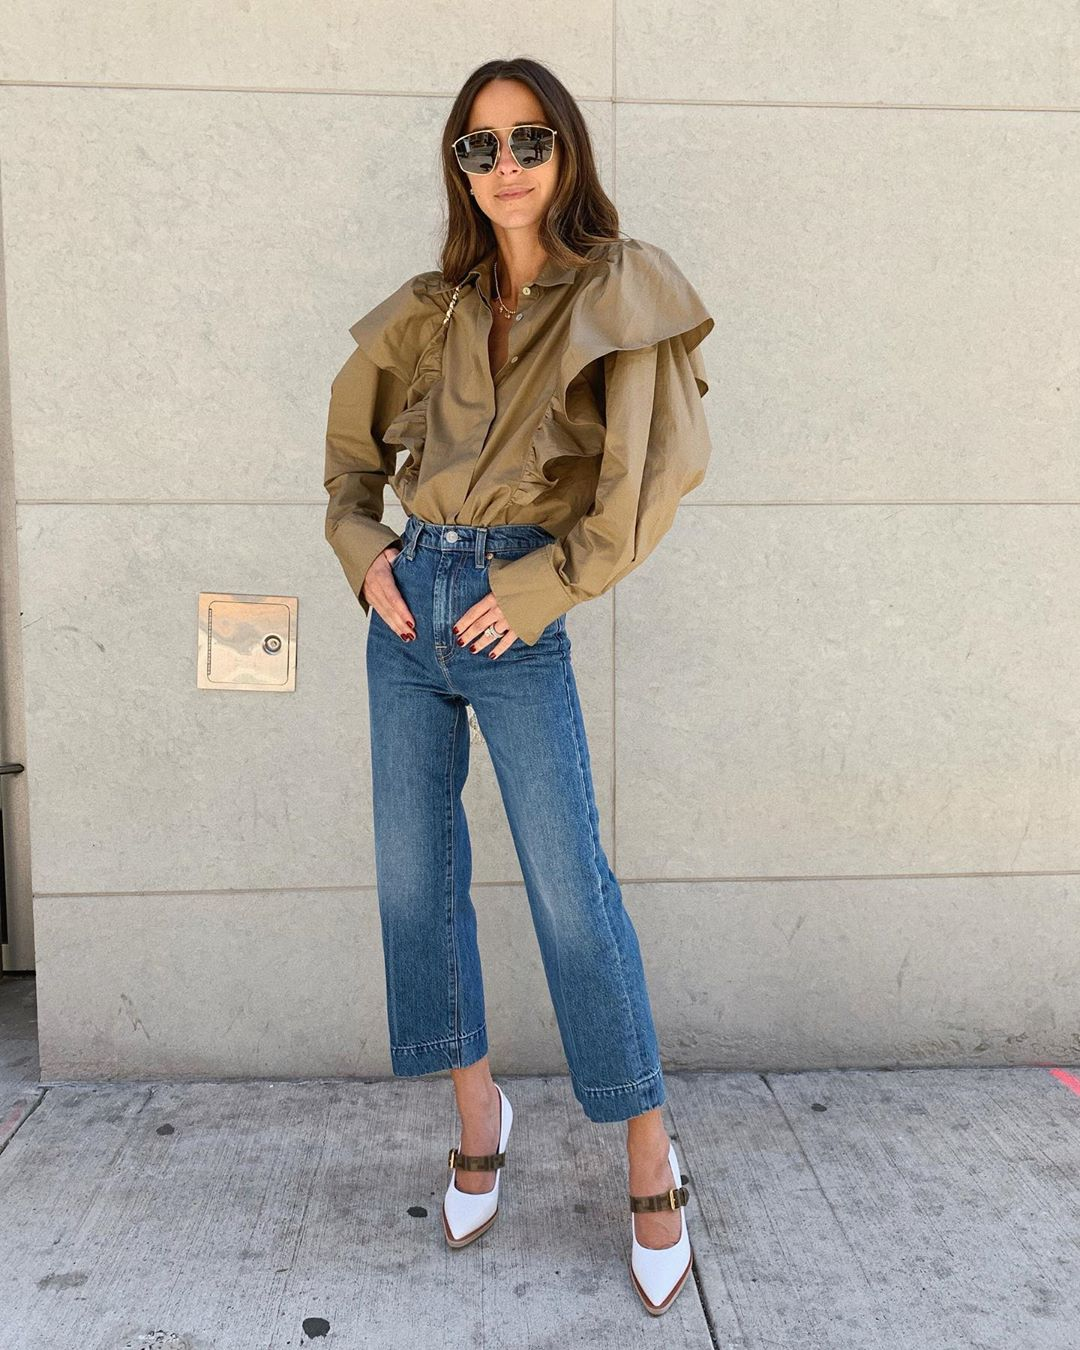 The Best Ruffled Blouses for Fall — Arielle Charnas Outfit Inspiration